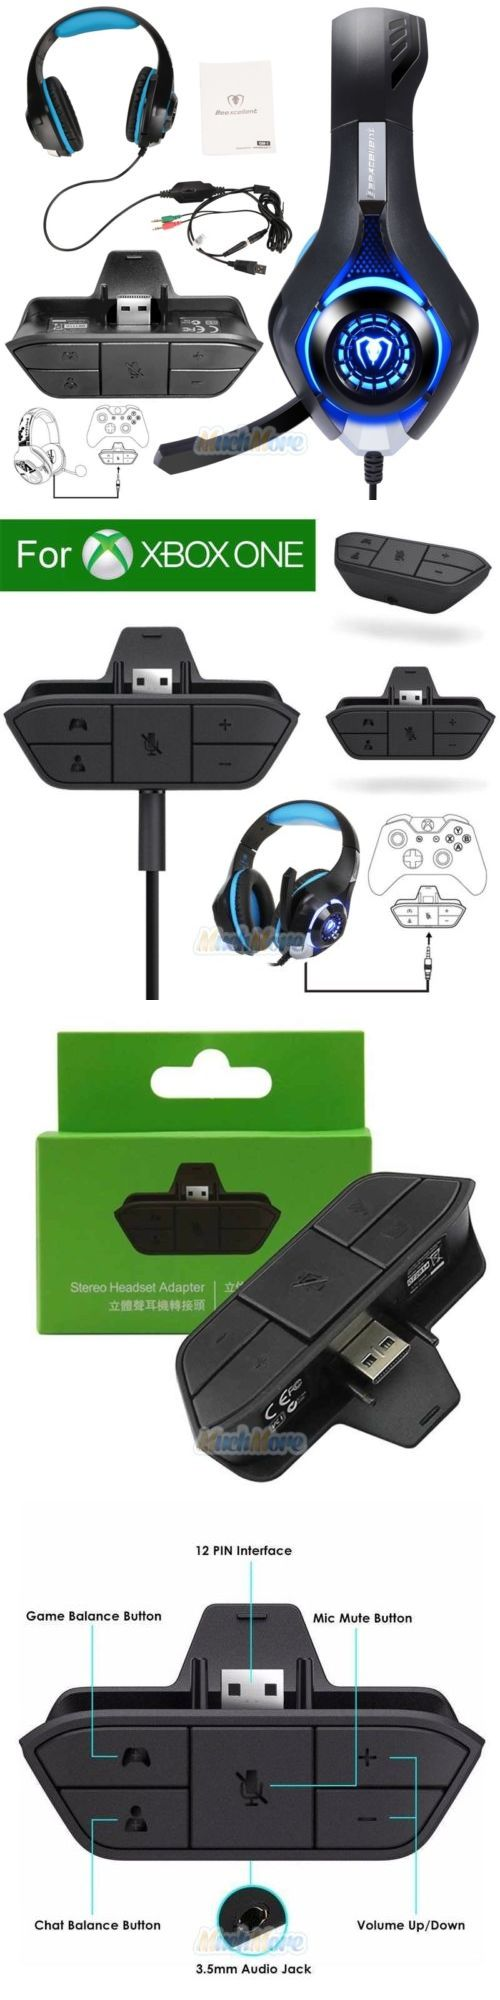 Cables and Adapters 171814: Audio Game Headset Headphone